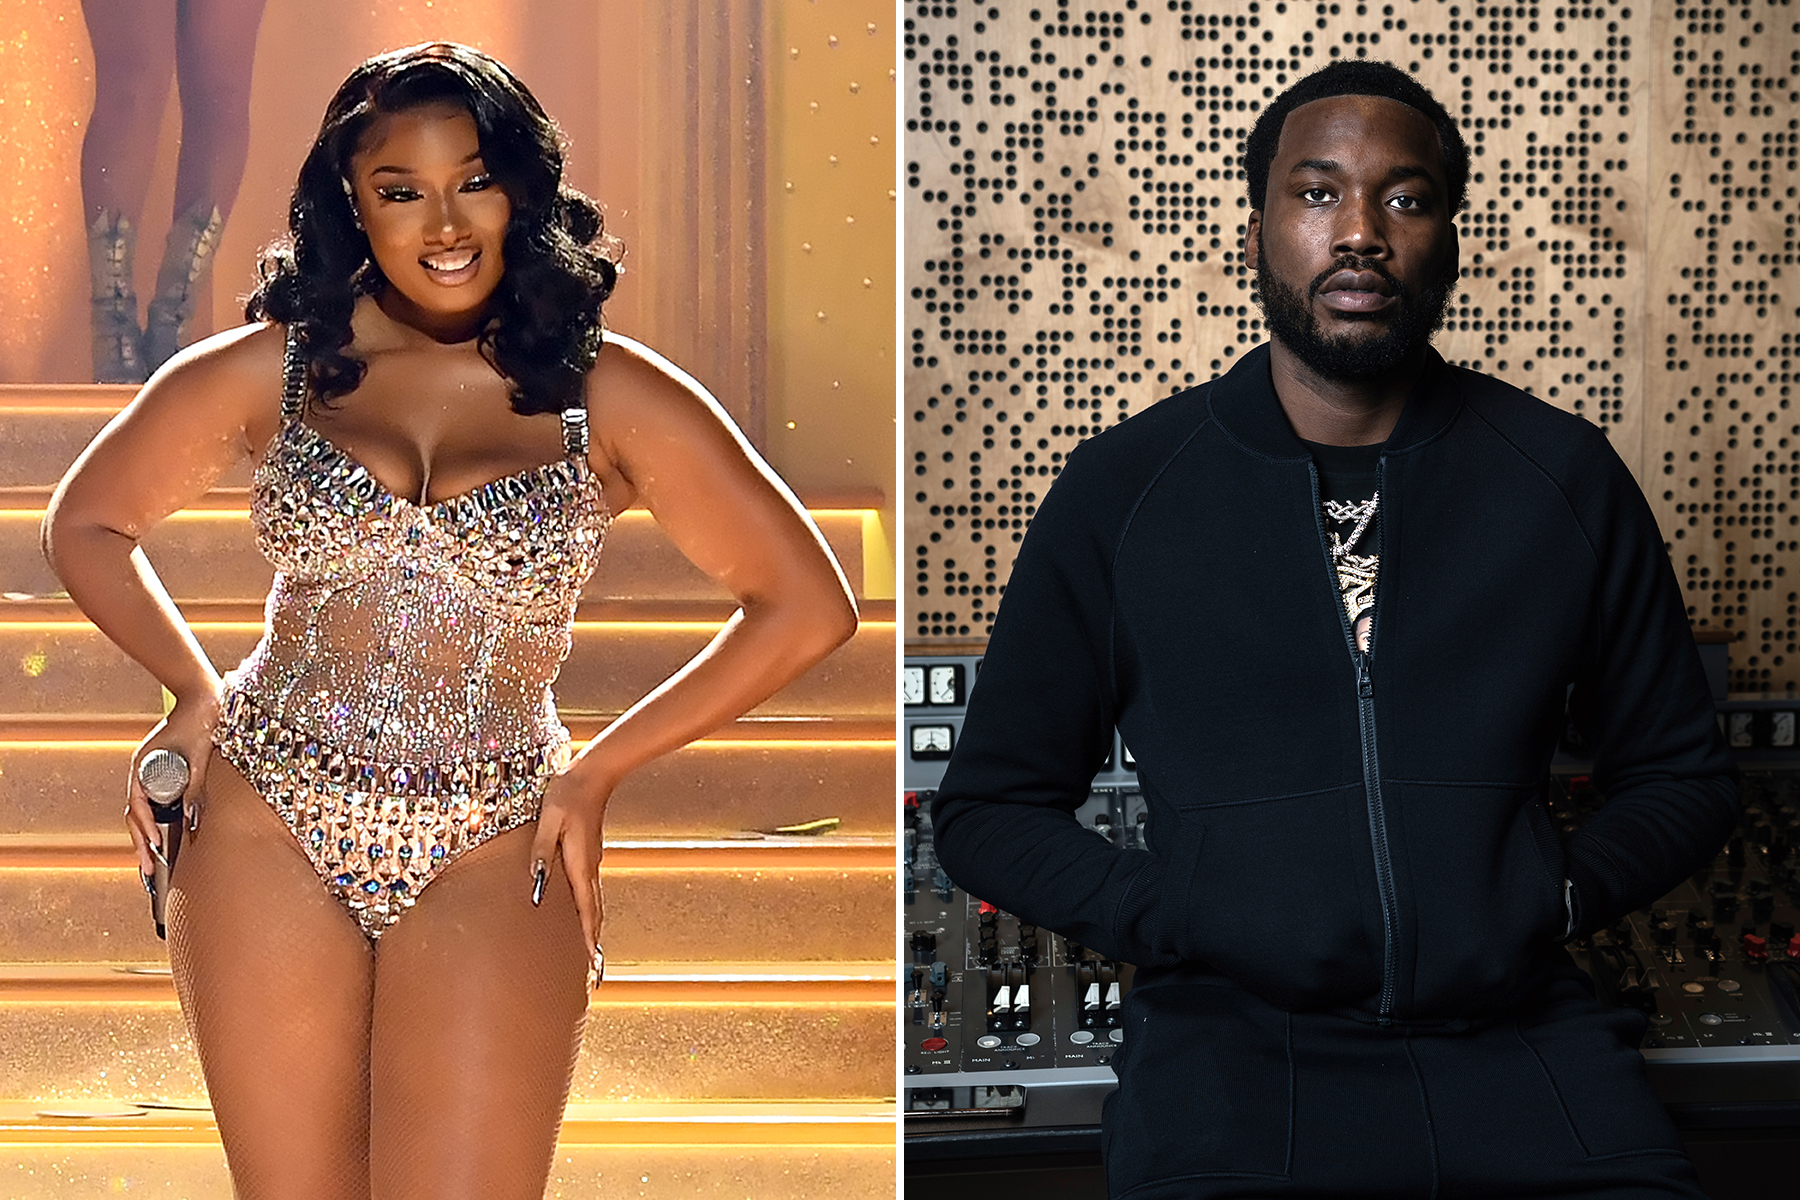 Megan Thee Stallion, Meek Mill to Perform at Triller Live Concert Series in Miami